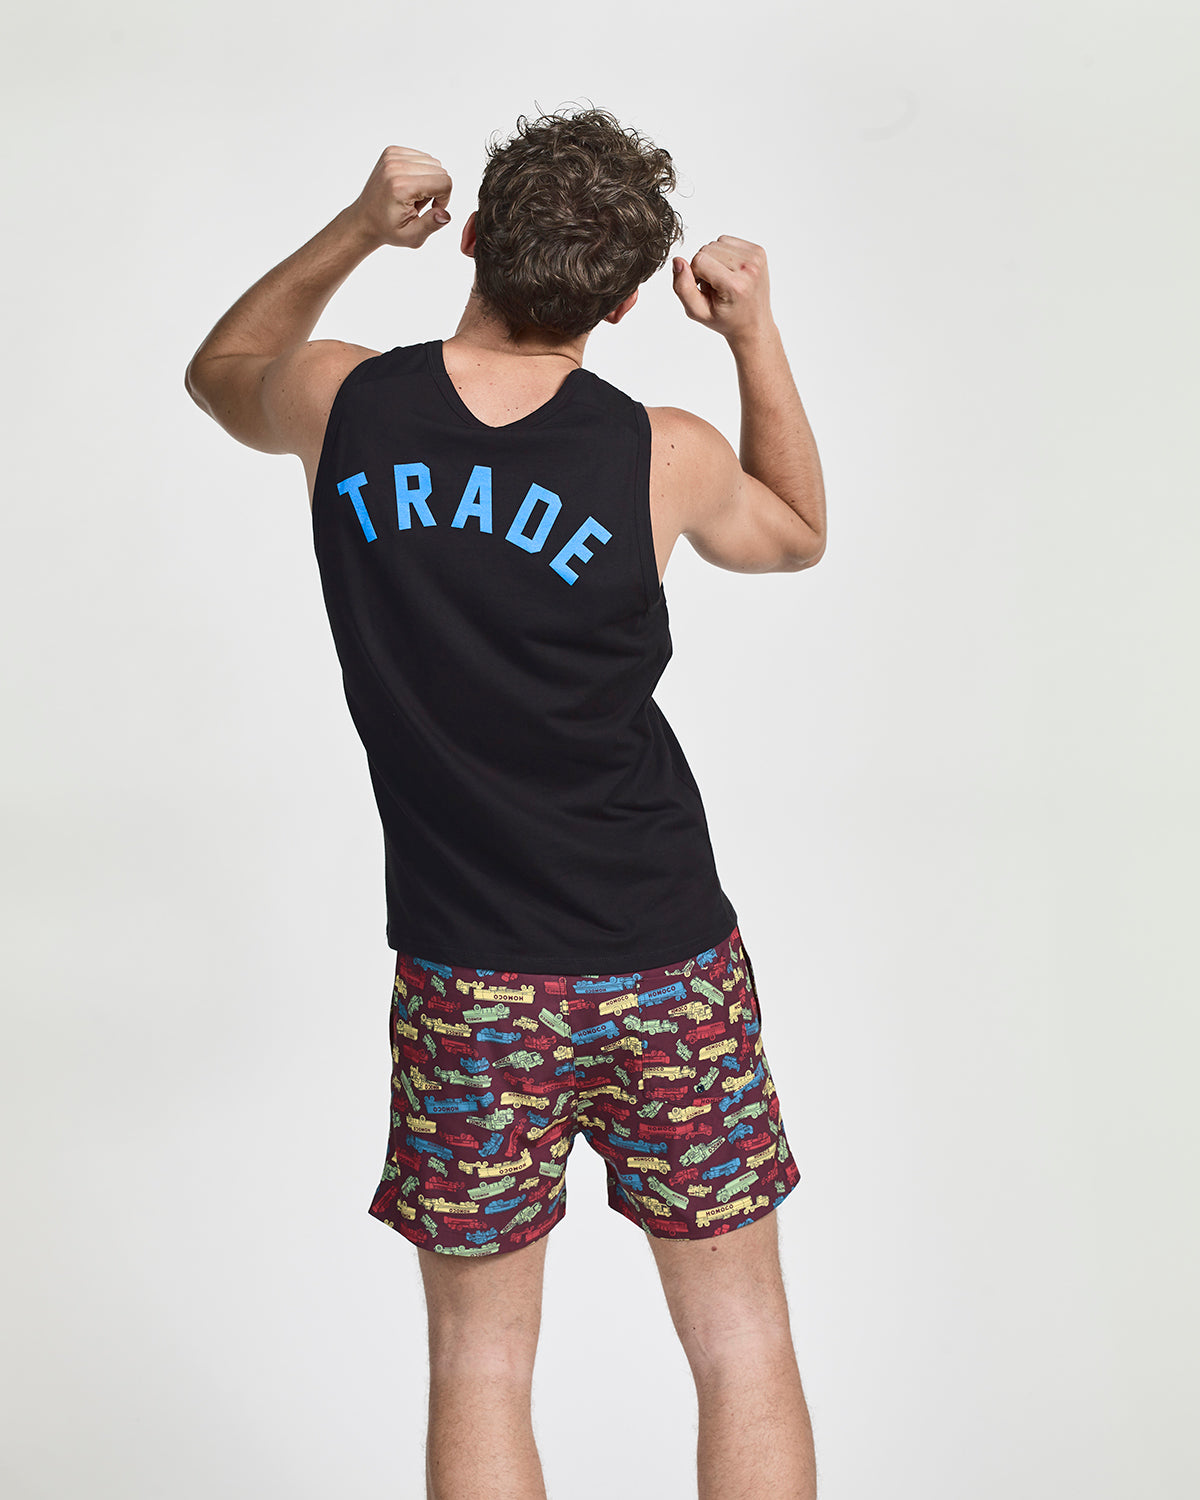 HOMOCO Trade Tank - Black